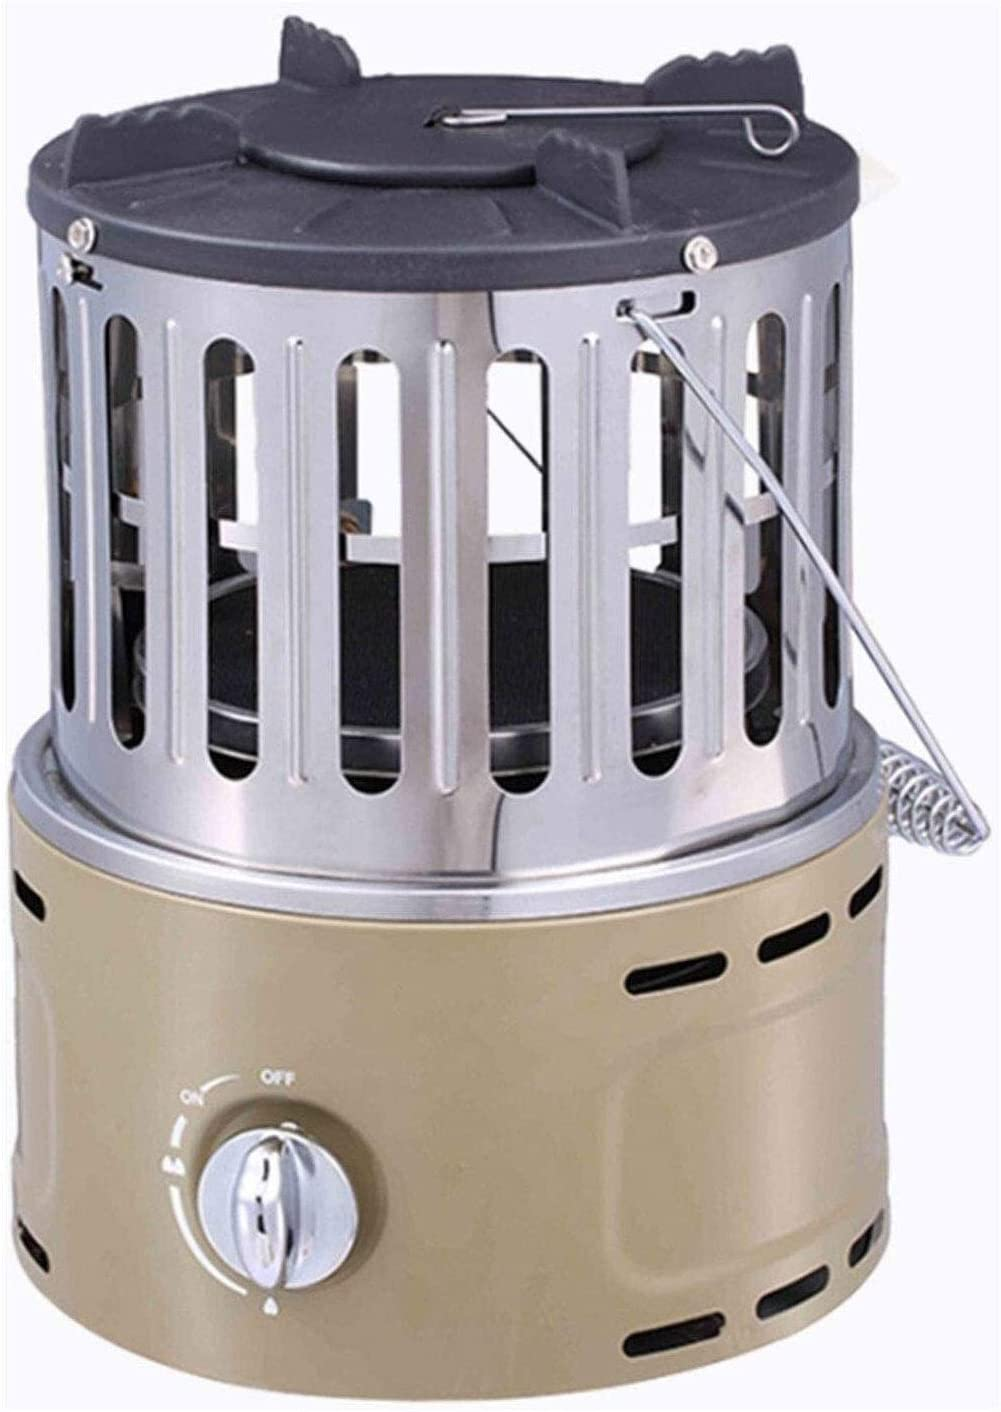 ?????? Outdoor Heating Outdoor Mini Space Patio Heater Stainless Steel Portable Outdoor Heat Lamp, Adjustable Outdoor Heaters for Party Festivals heaters for Patio